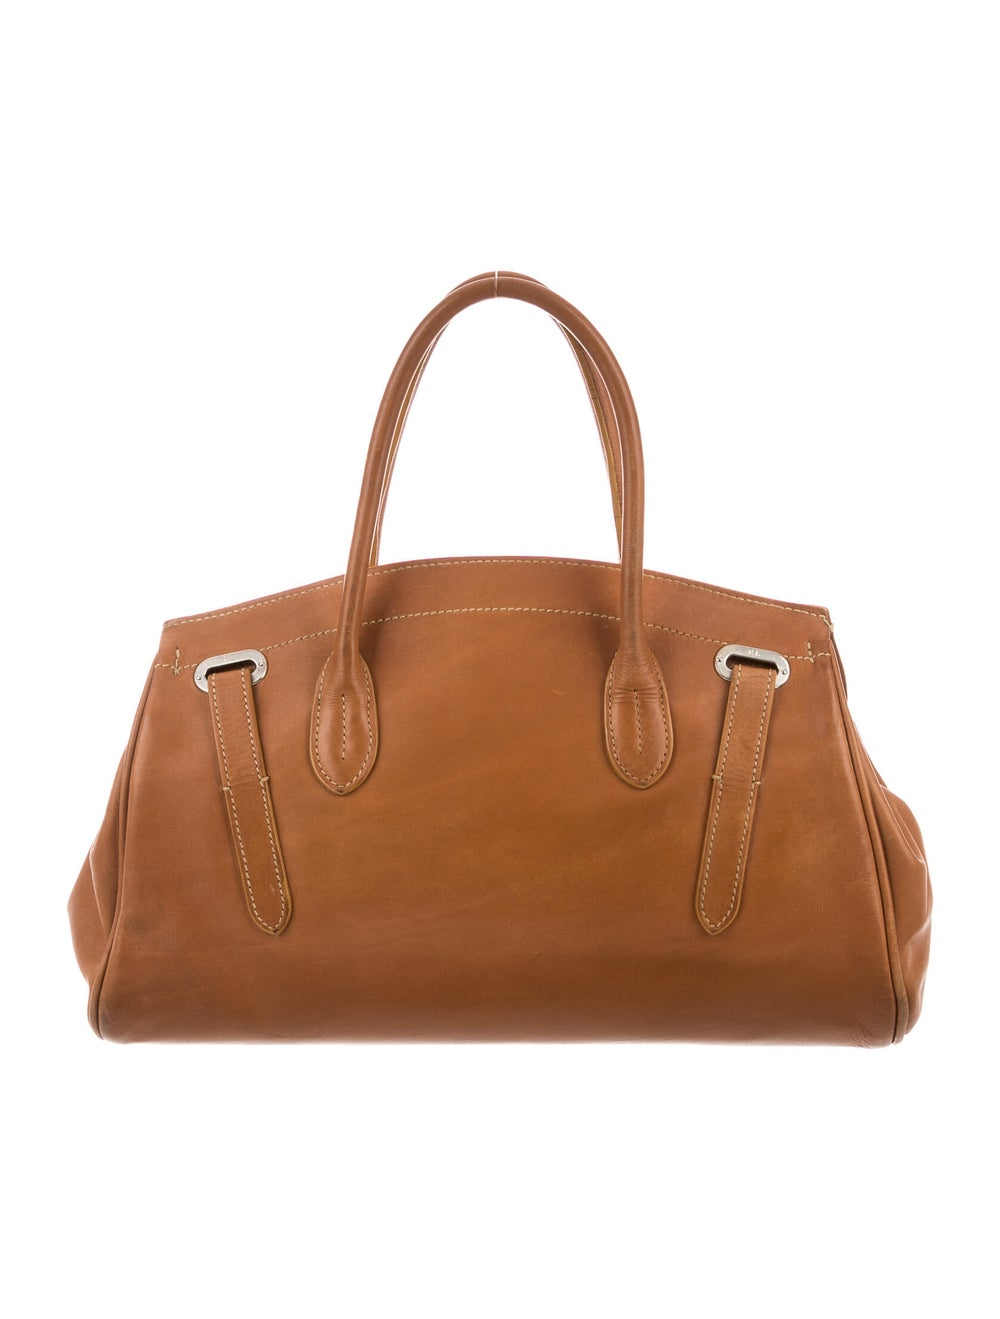 Ralph Lauren Ricky Top Handle Bag Brown - image 4